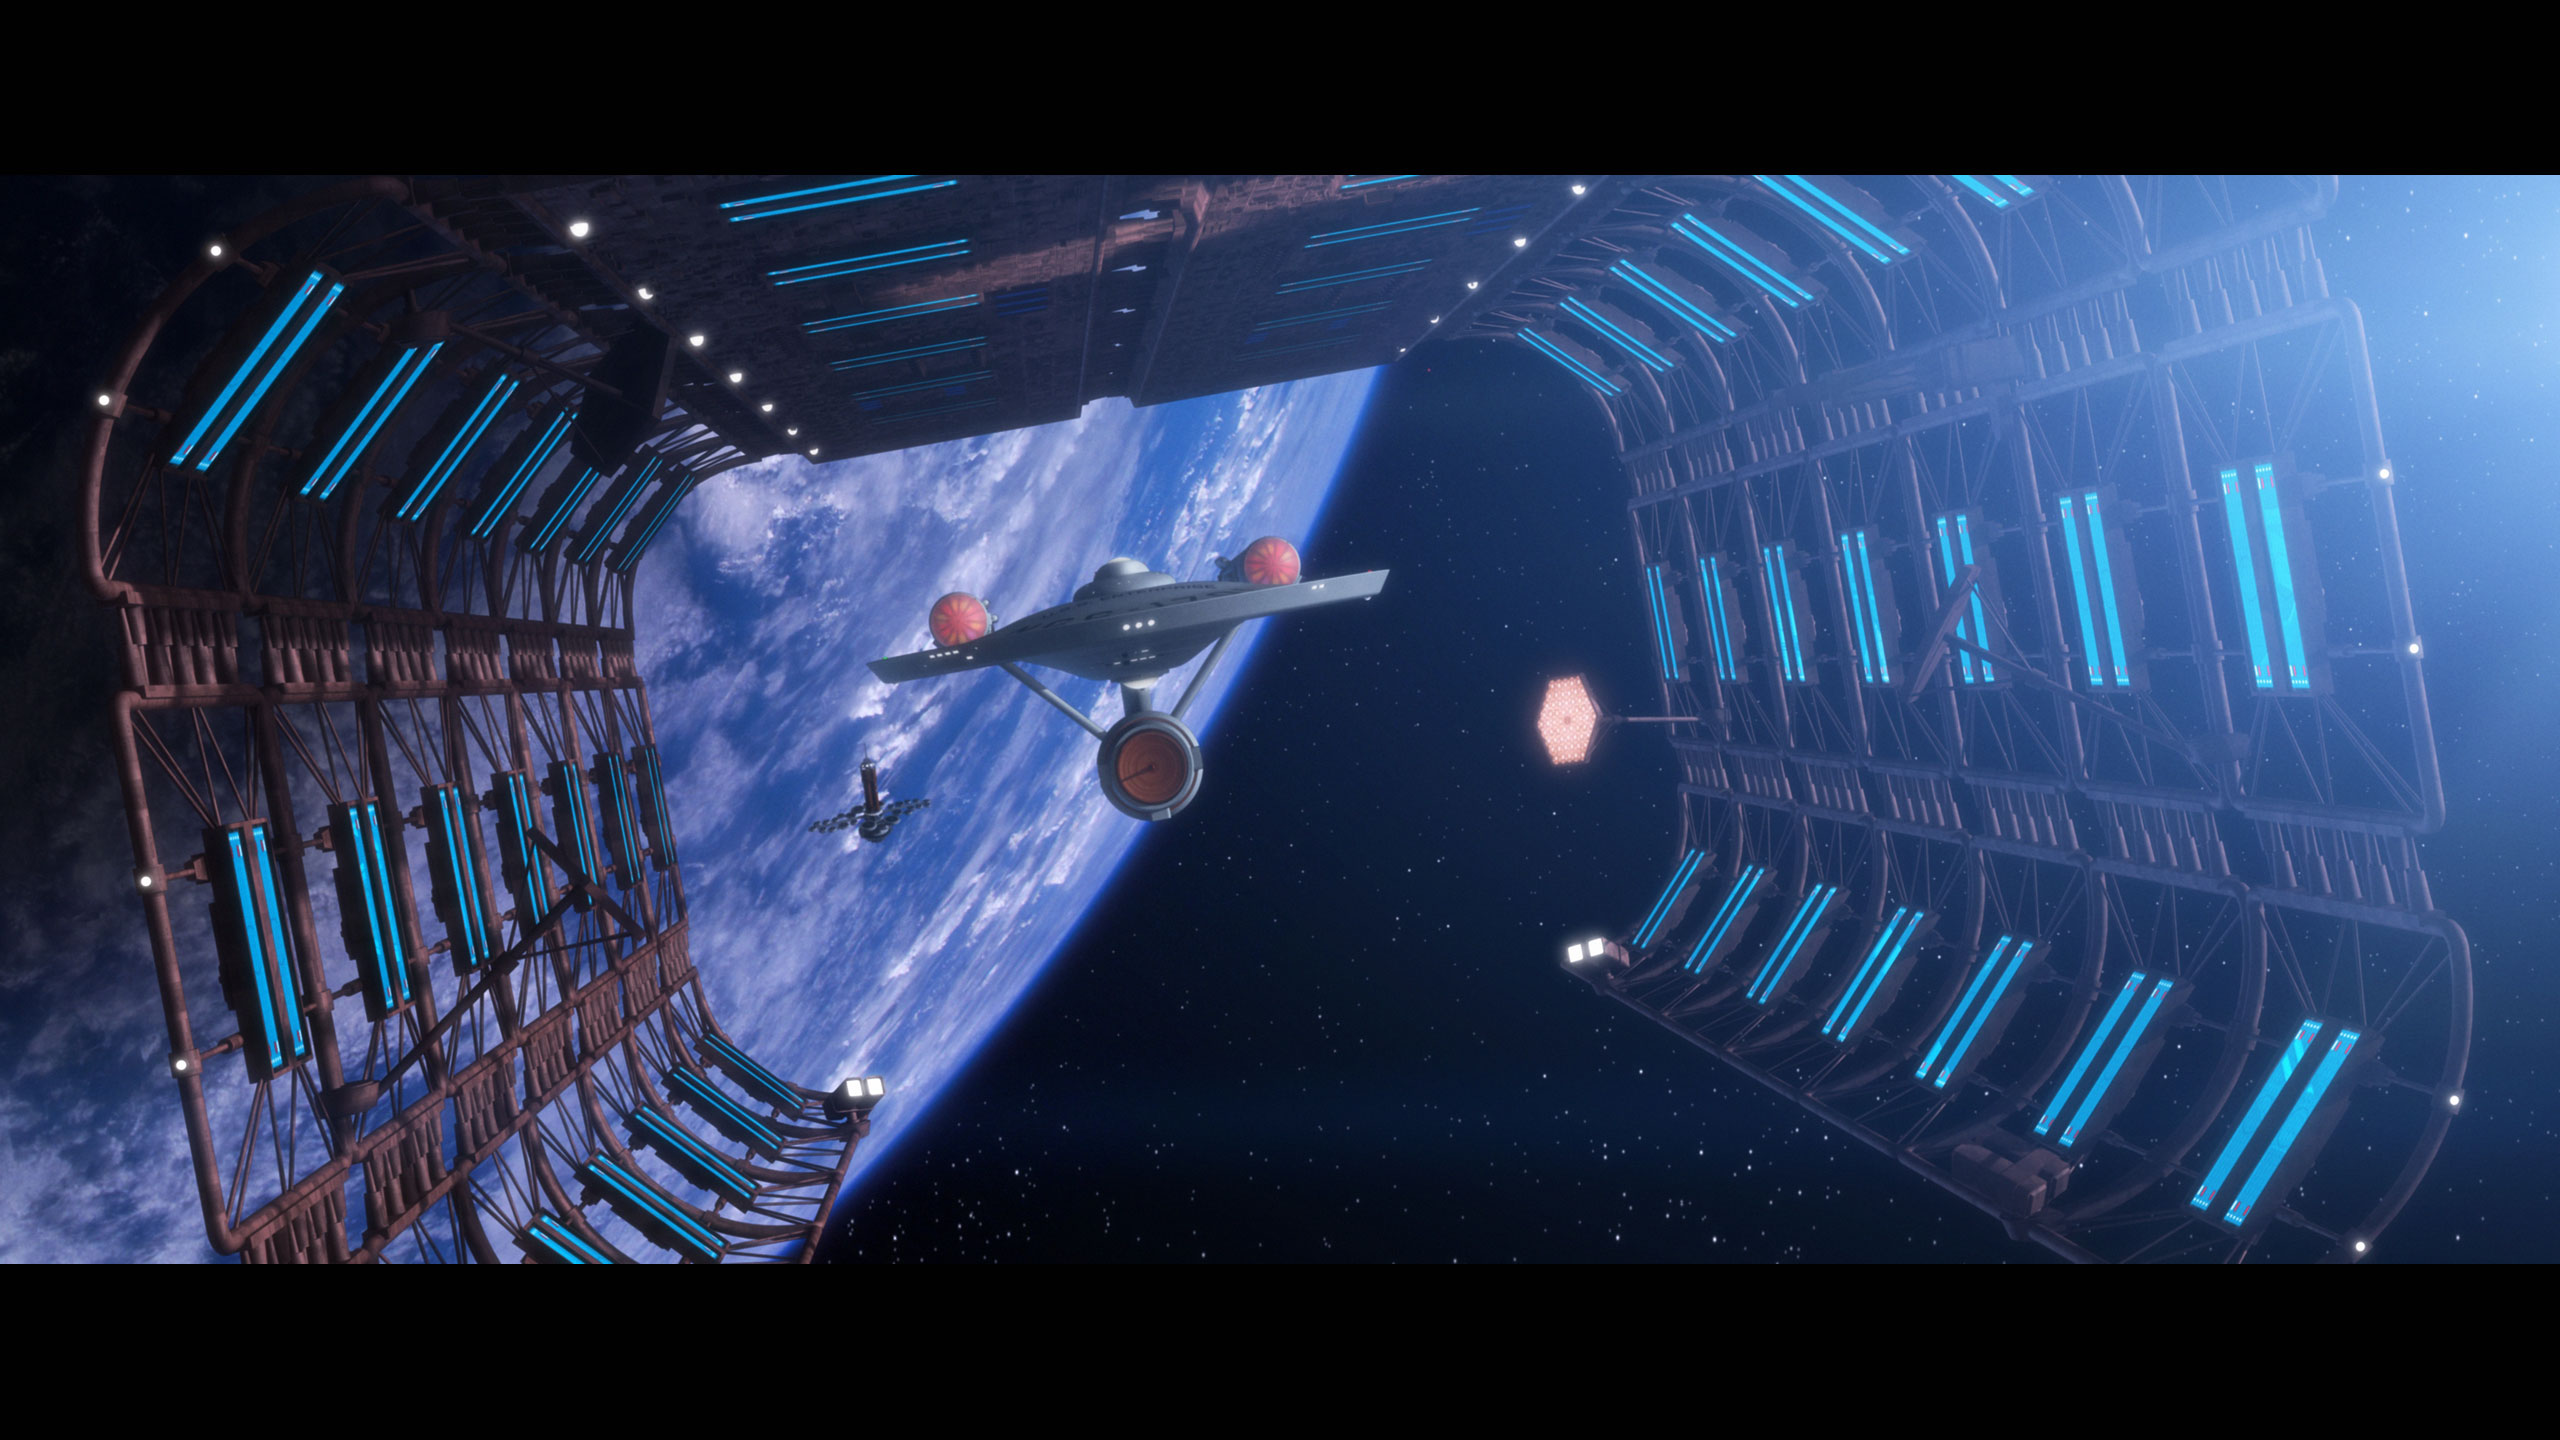 Ncc 1701 Wallpaper Posted By John Anderson